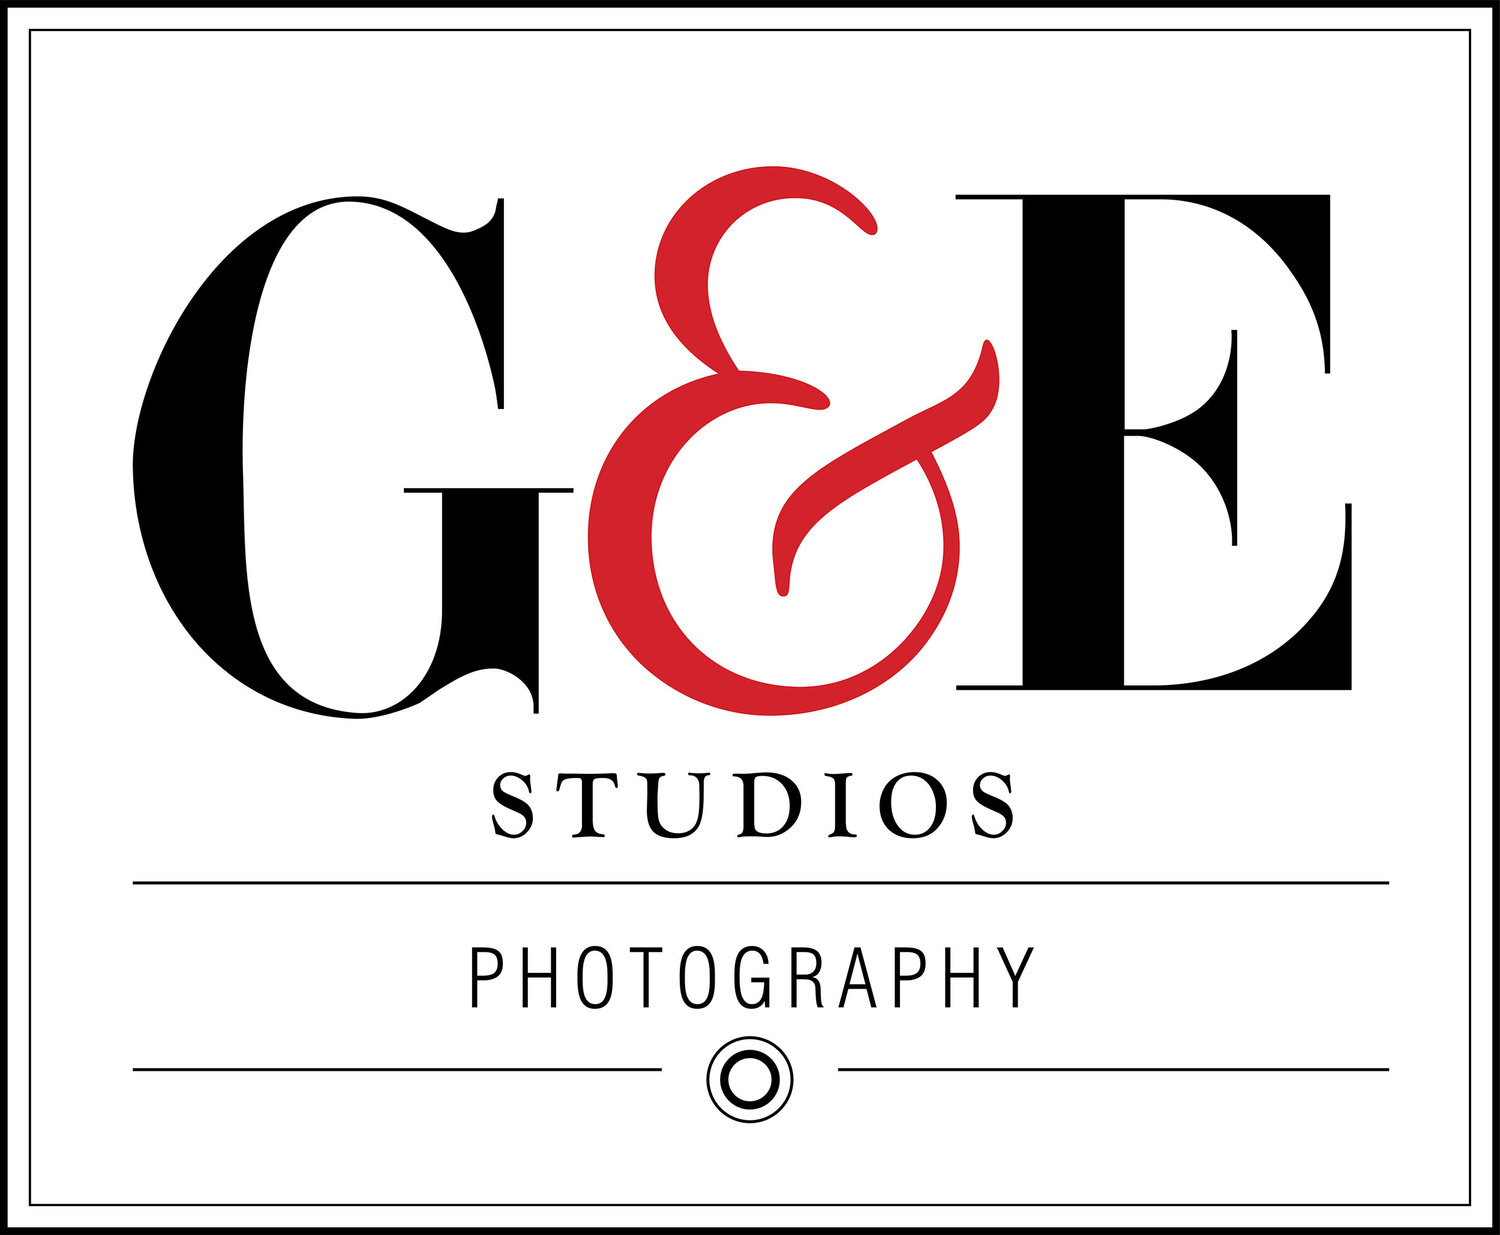 G & E Studios-Photography Services Family and Business